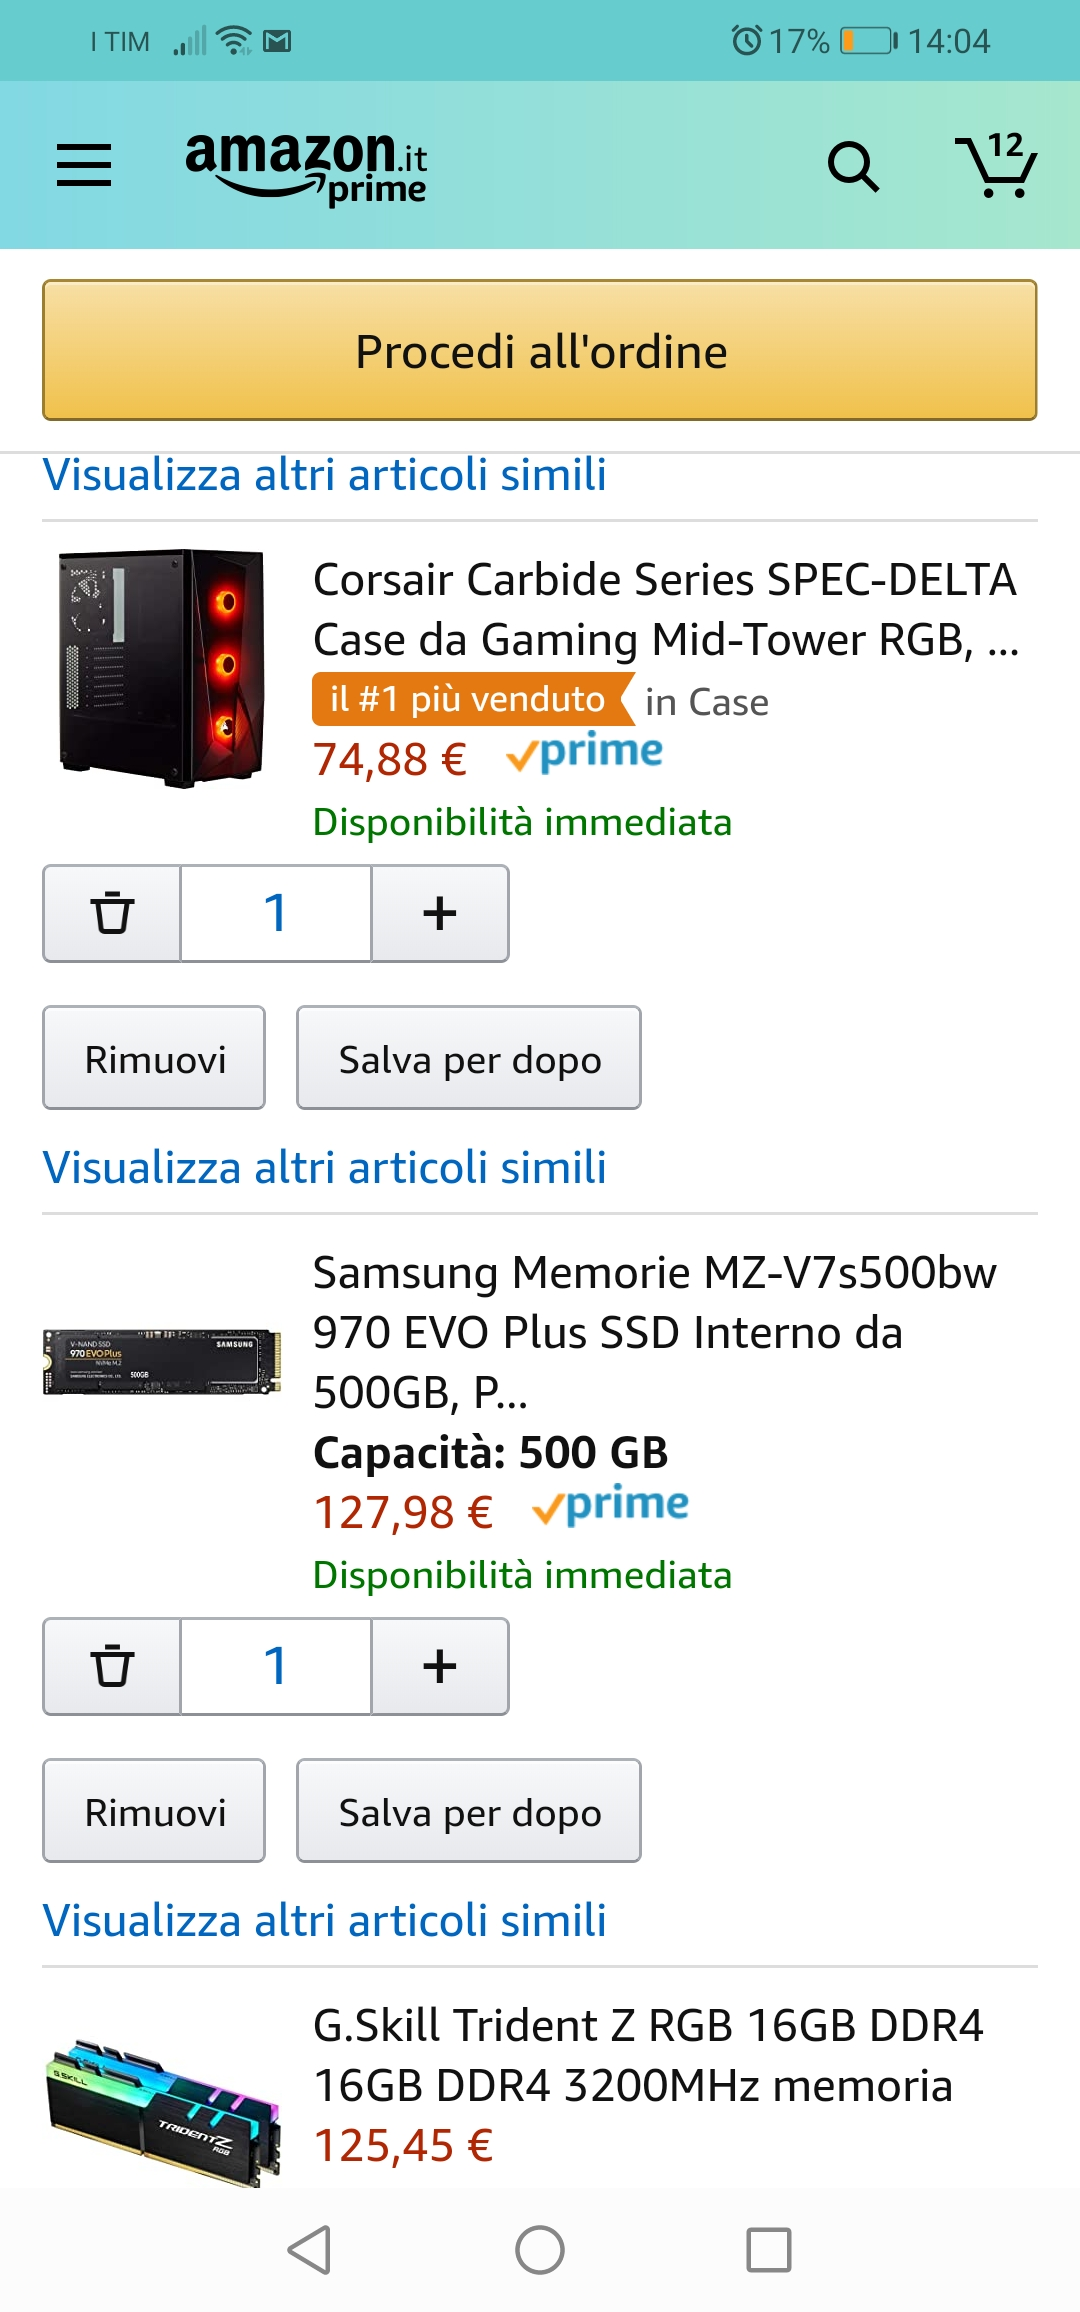 Screenshot_20200509_140450_com.amazon.mShop.android.shopping.jpg